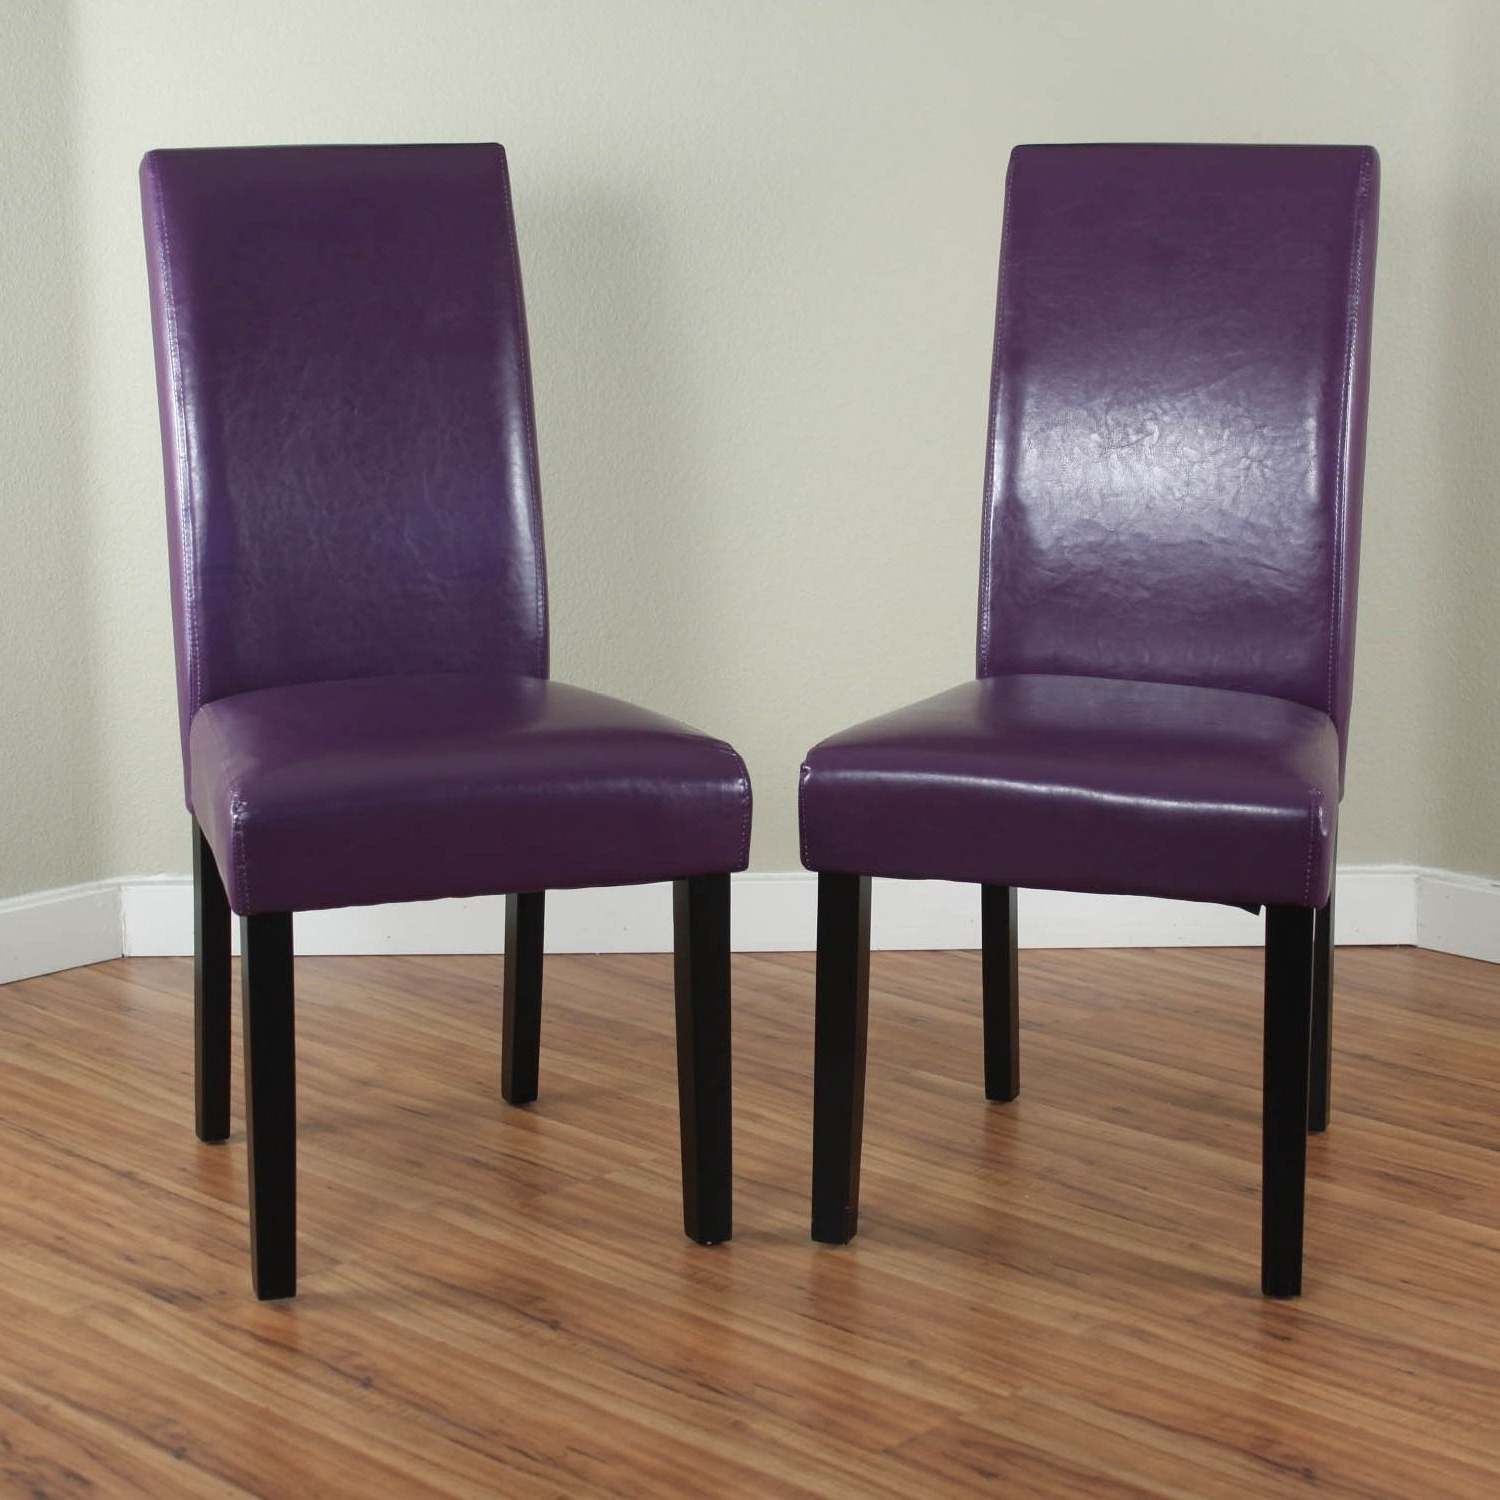 Most Up To Date Go Beyond Ordinary Design With A Pair Of Villa Purple Faux Leather With Purple Faux Leather Dining Chairs (Gallery 2 of 25)